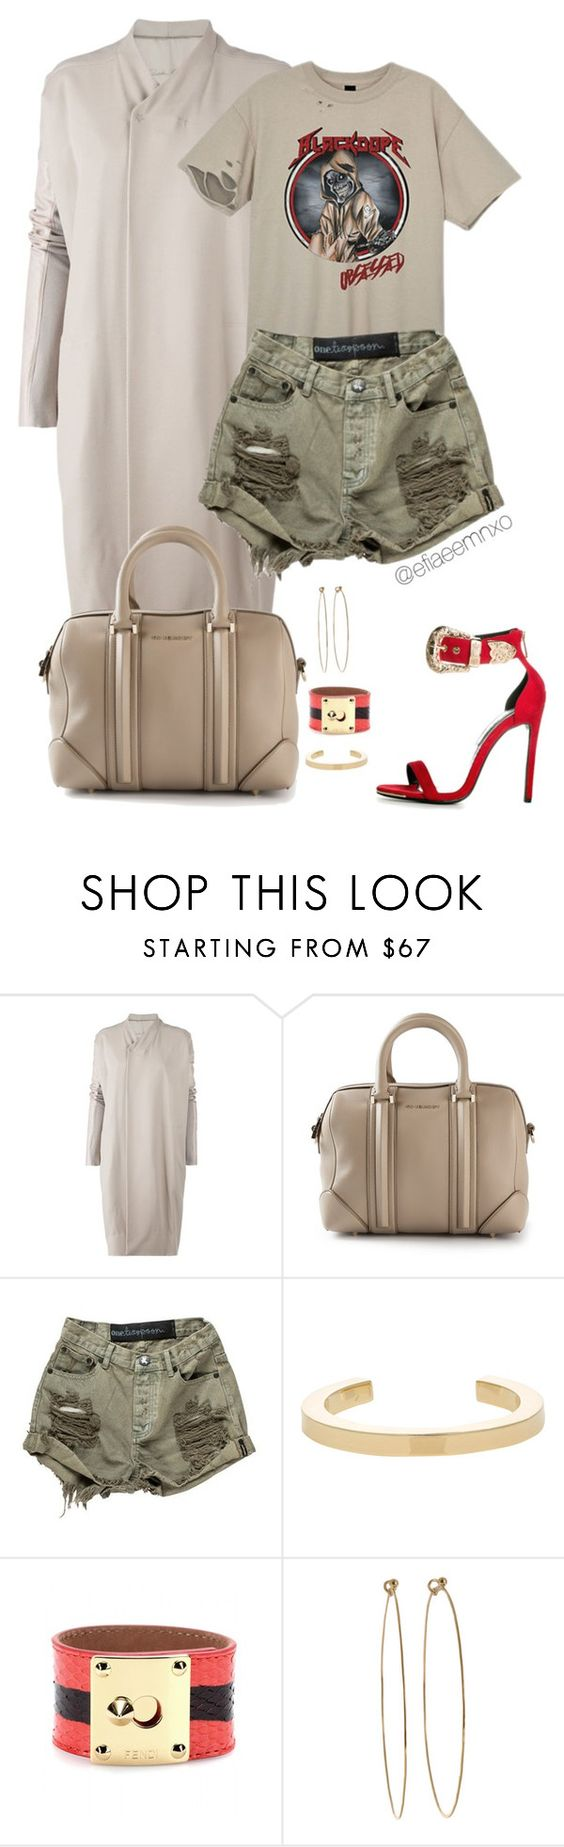 """""""Dope"""" by efiaeemnxo ❤ liked on Polyvore featuring Rick Owens, Givenchy, OneTeaspoon, Jennifer Fisher, Fendi and Dean Harris"""